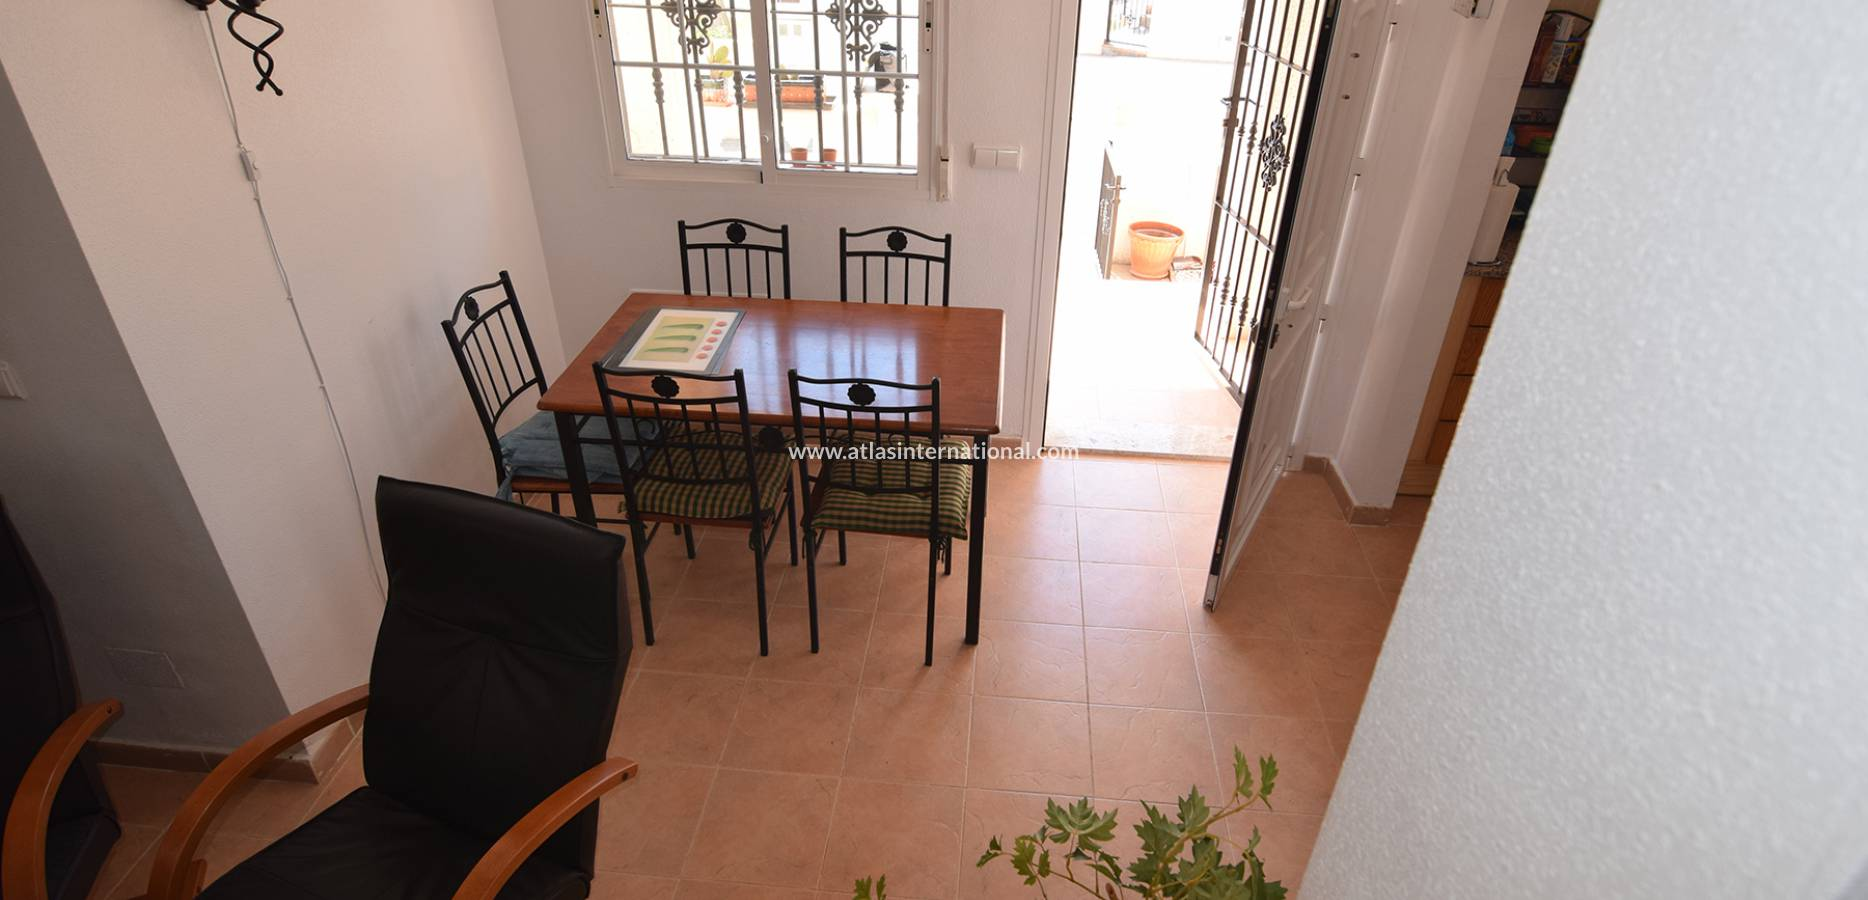 Venta - Semi-Detached Villa - Orihuela costa